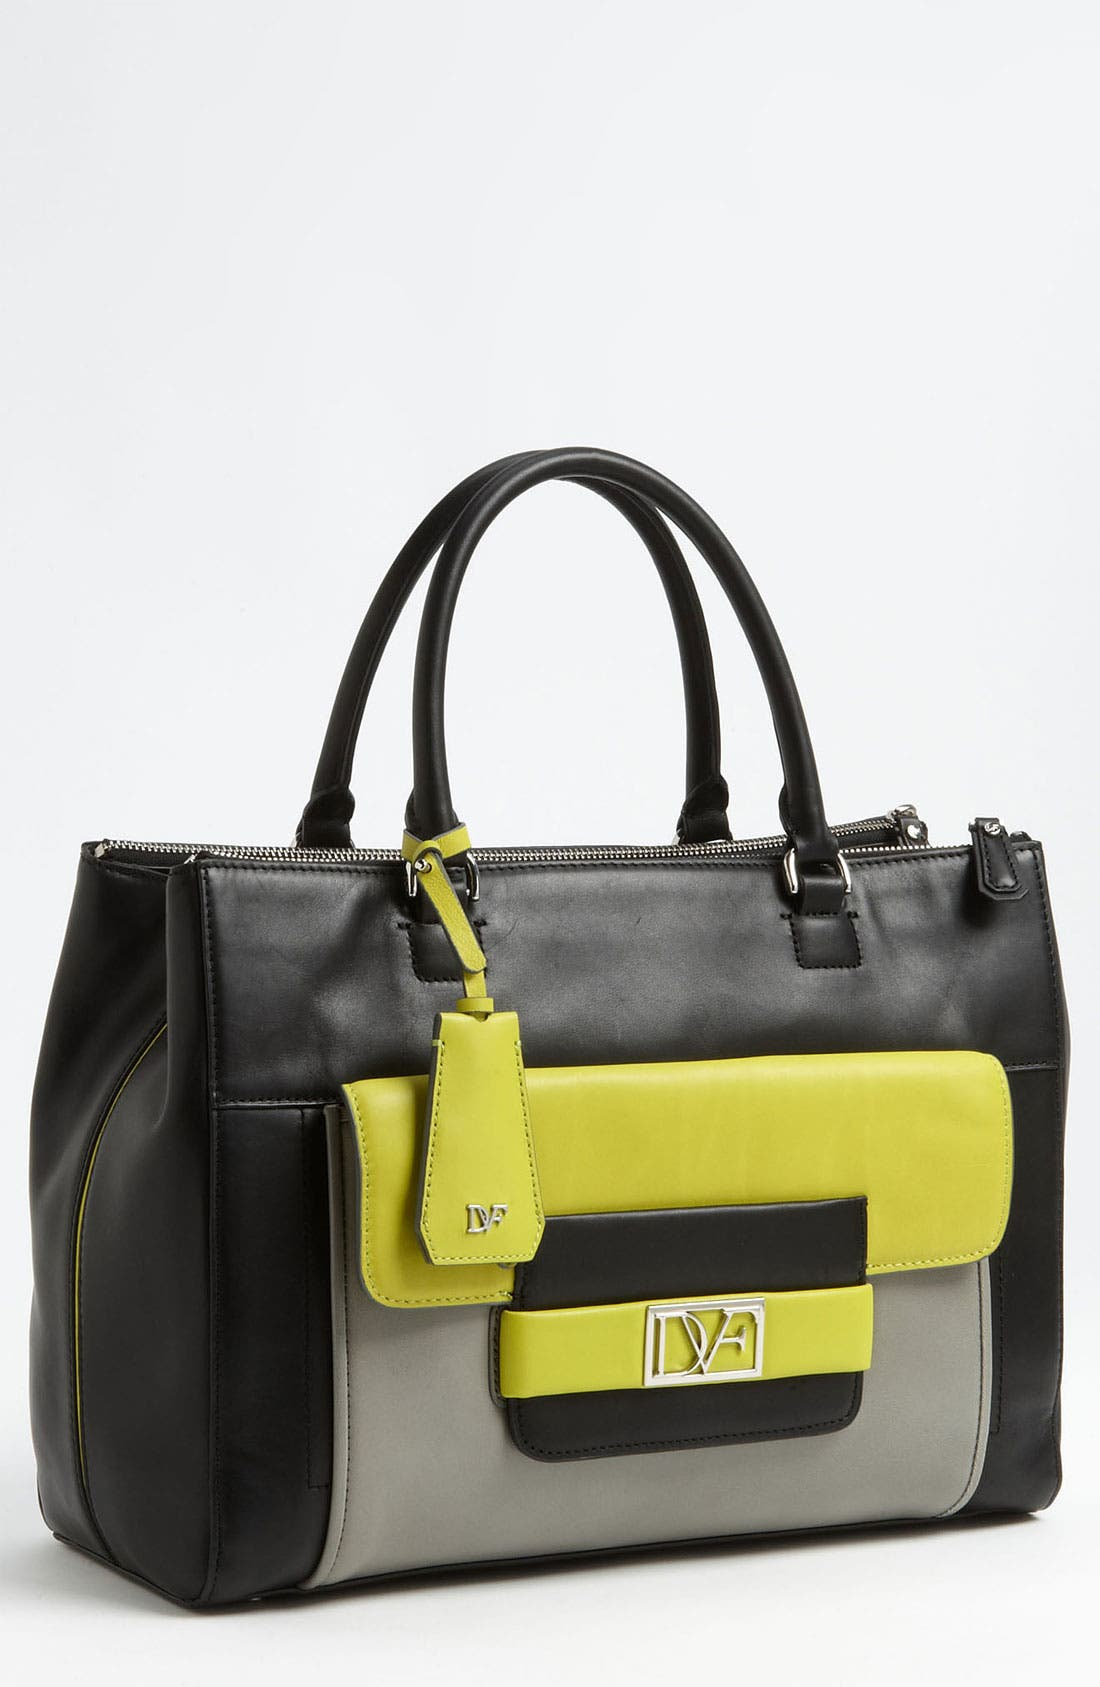 Alternate Image 1 Selected - Diane von Furstenberg 'Eva' Colorblock Tote